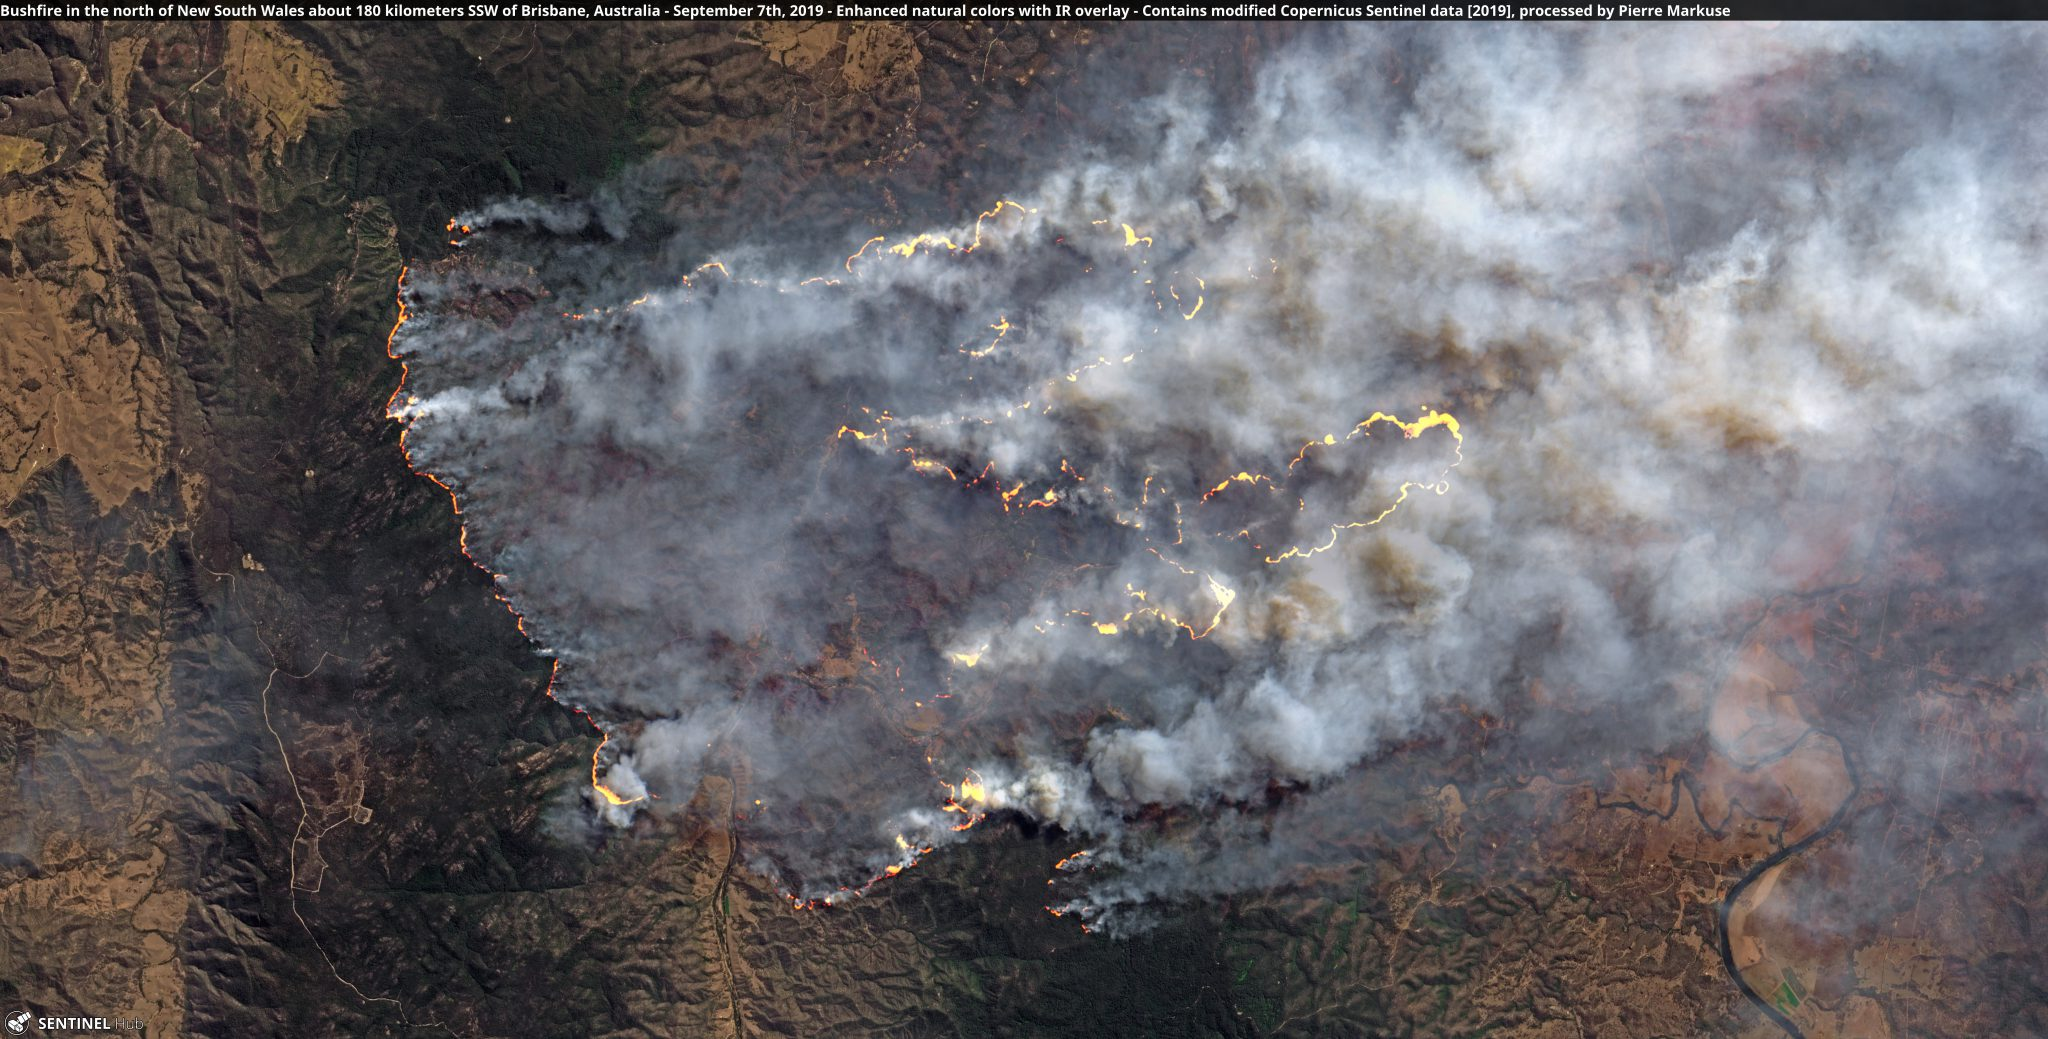 desc:Bushfire in the north of New South Wales about 180 kilometers SSW of Brisbane, Australia - September 7th, 2019 opernicus/Pierre Markuse